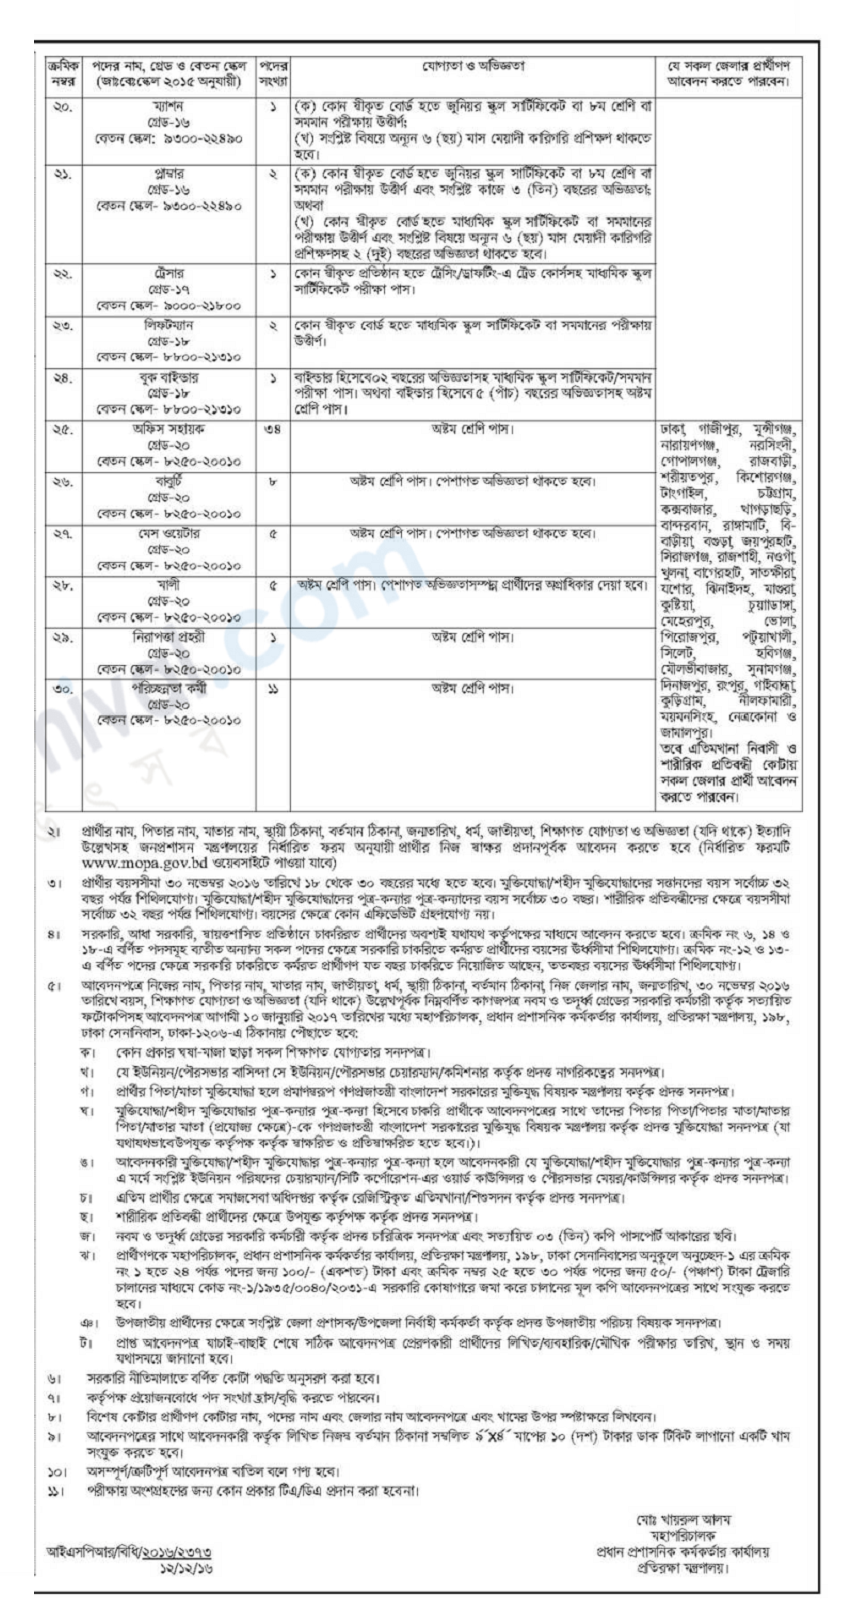 Bangladesh Ministry of Defence Job Circular